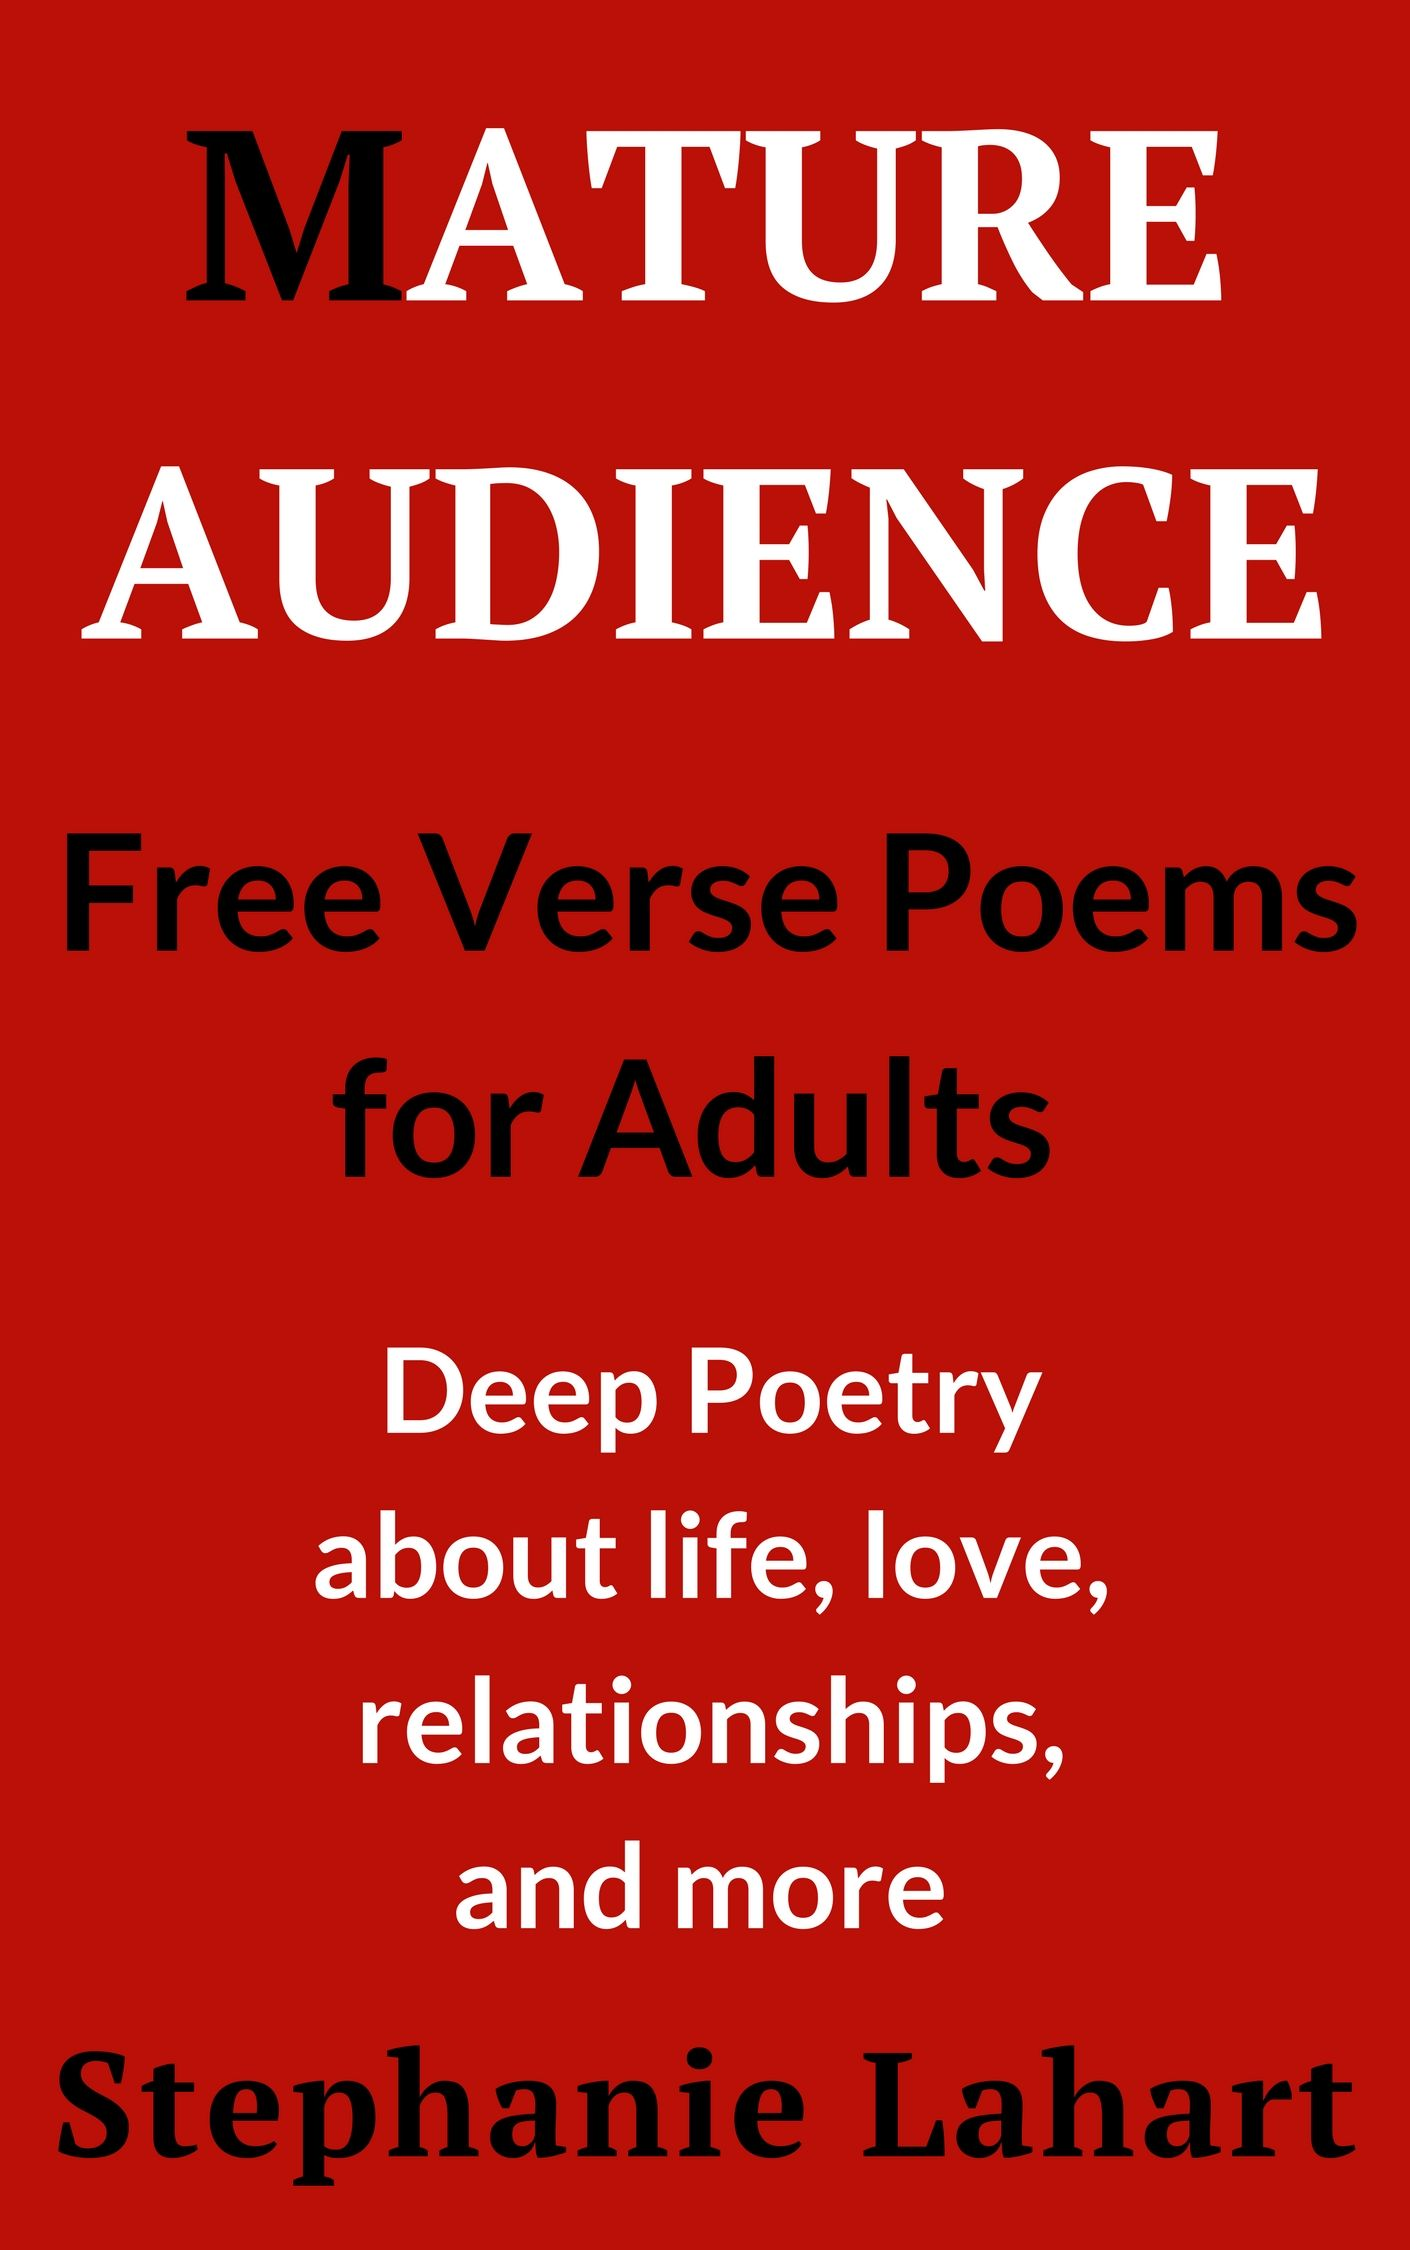 Adult Free Verse Poems about Life, Love, Relationships, and MORE.